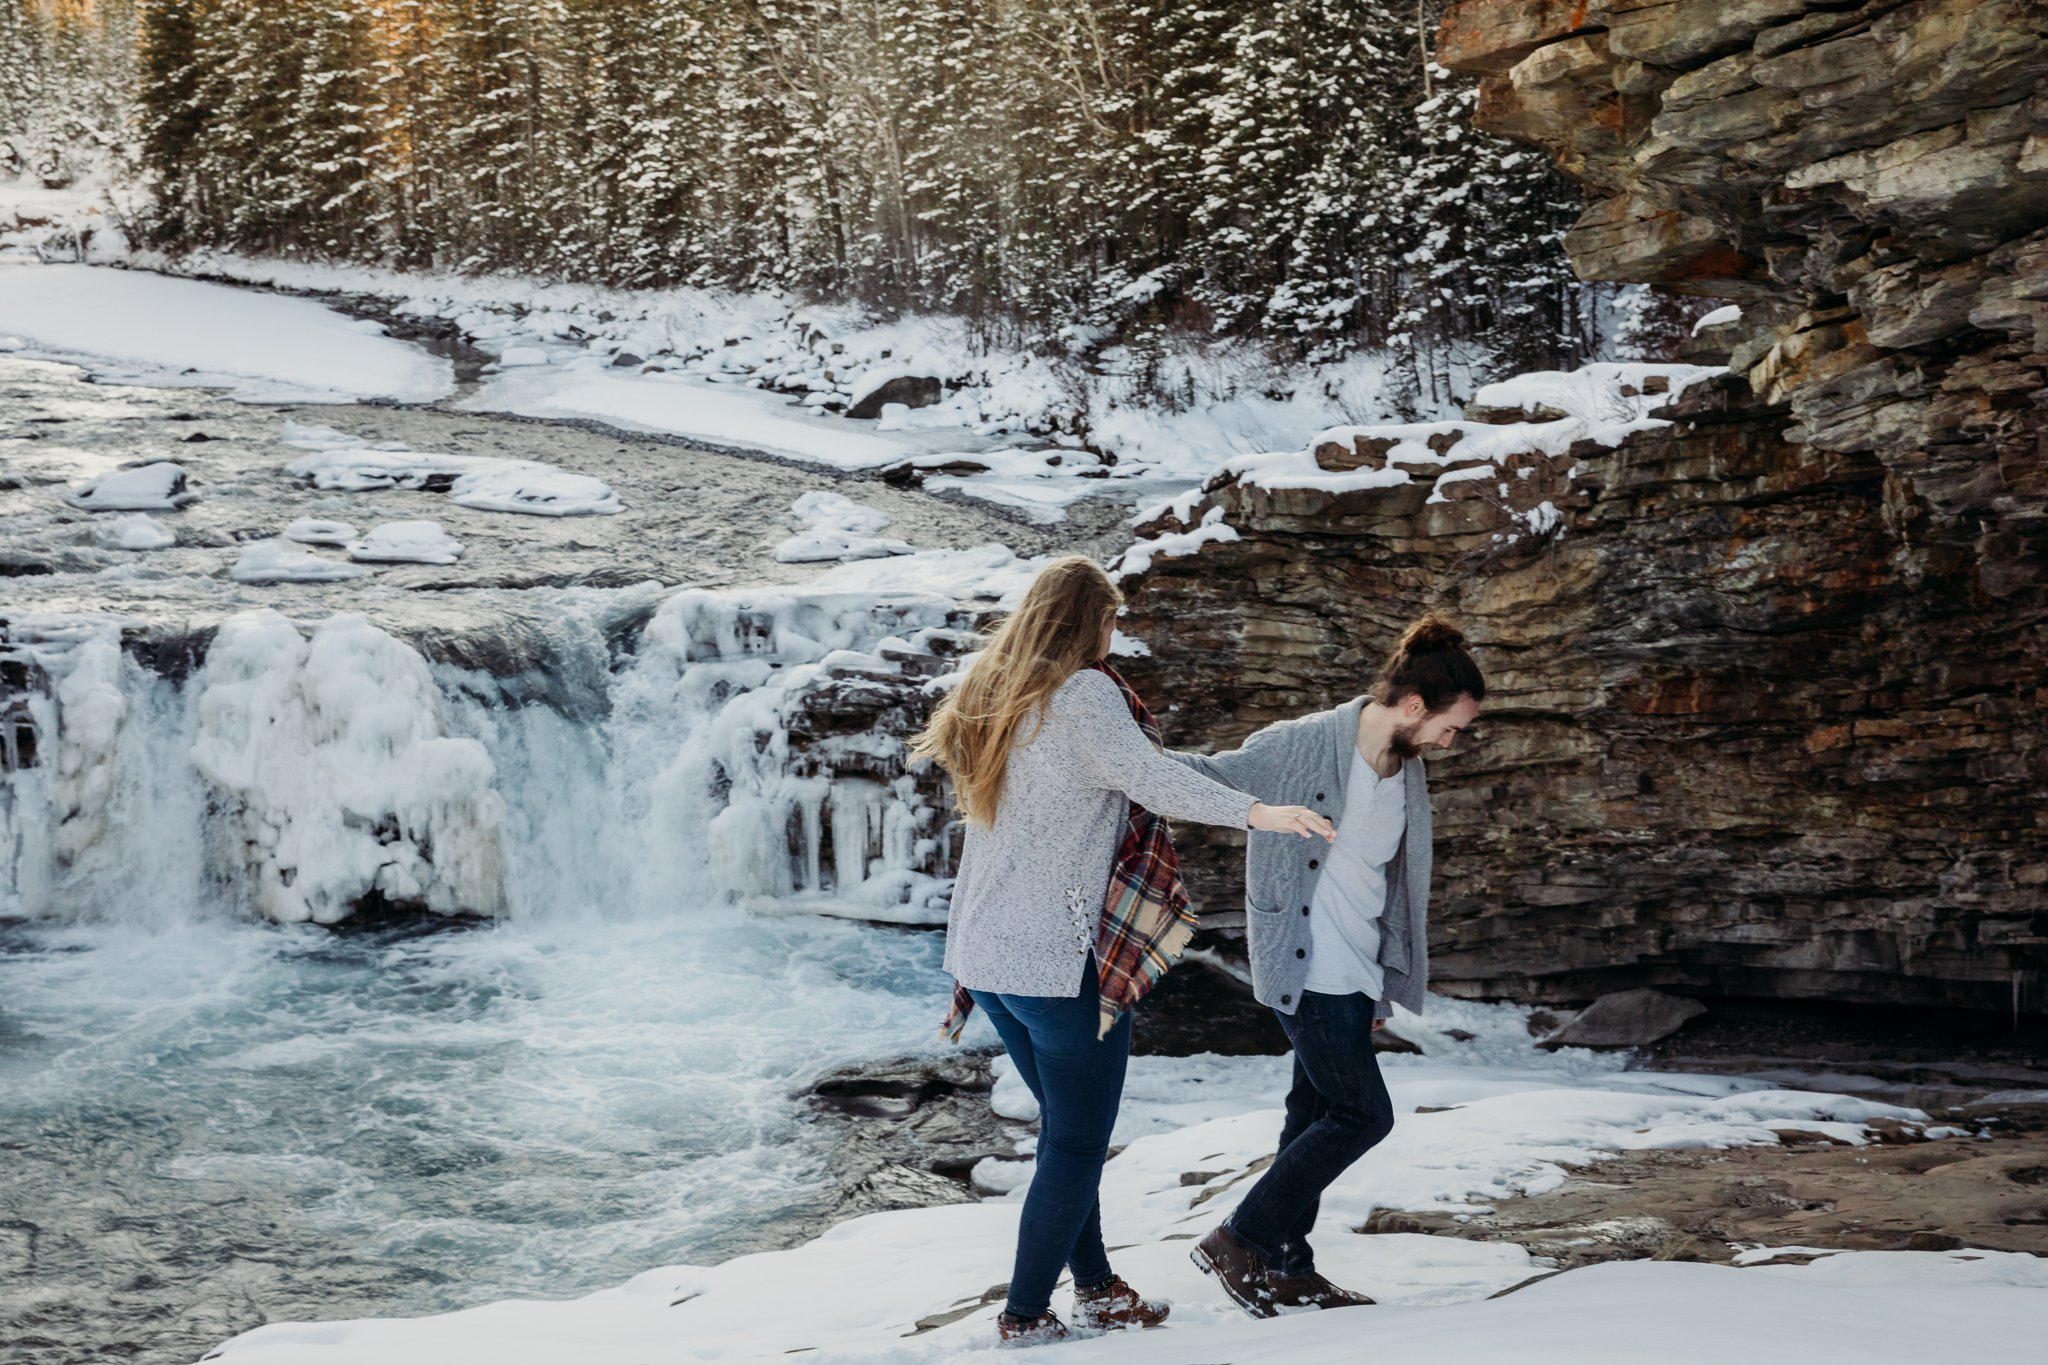 AshleyDaphnePhotography Calgary Photographer Wedding Engagement Sheep River Provincial Park Photos Kananskis Rocky Mountain Canmore Photographer_0057.jpg